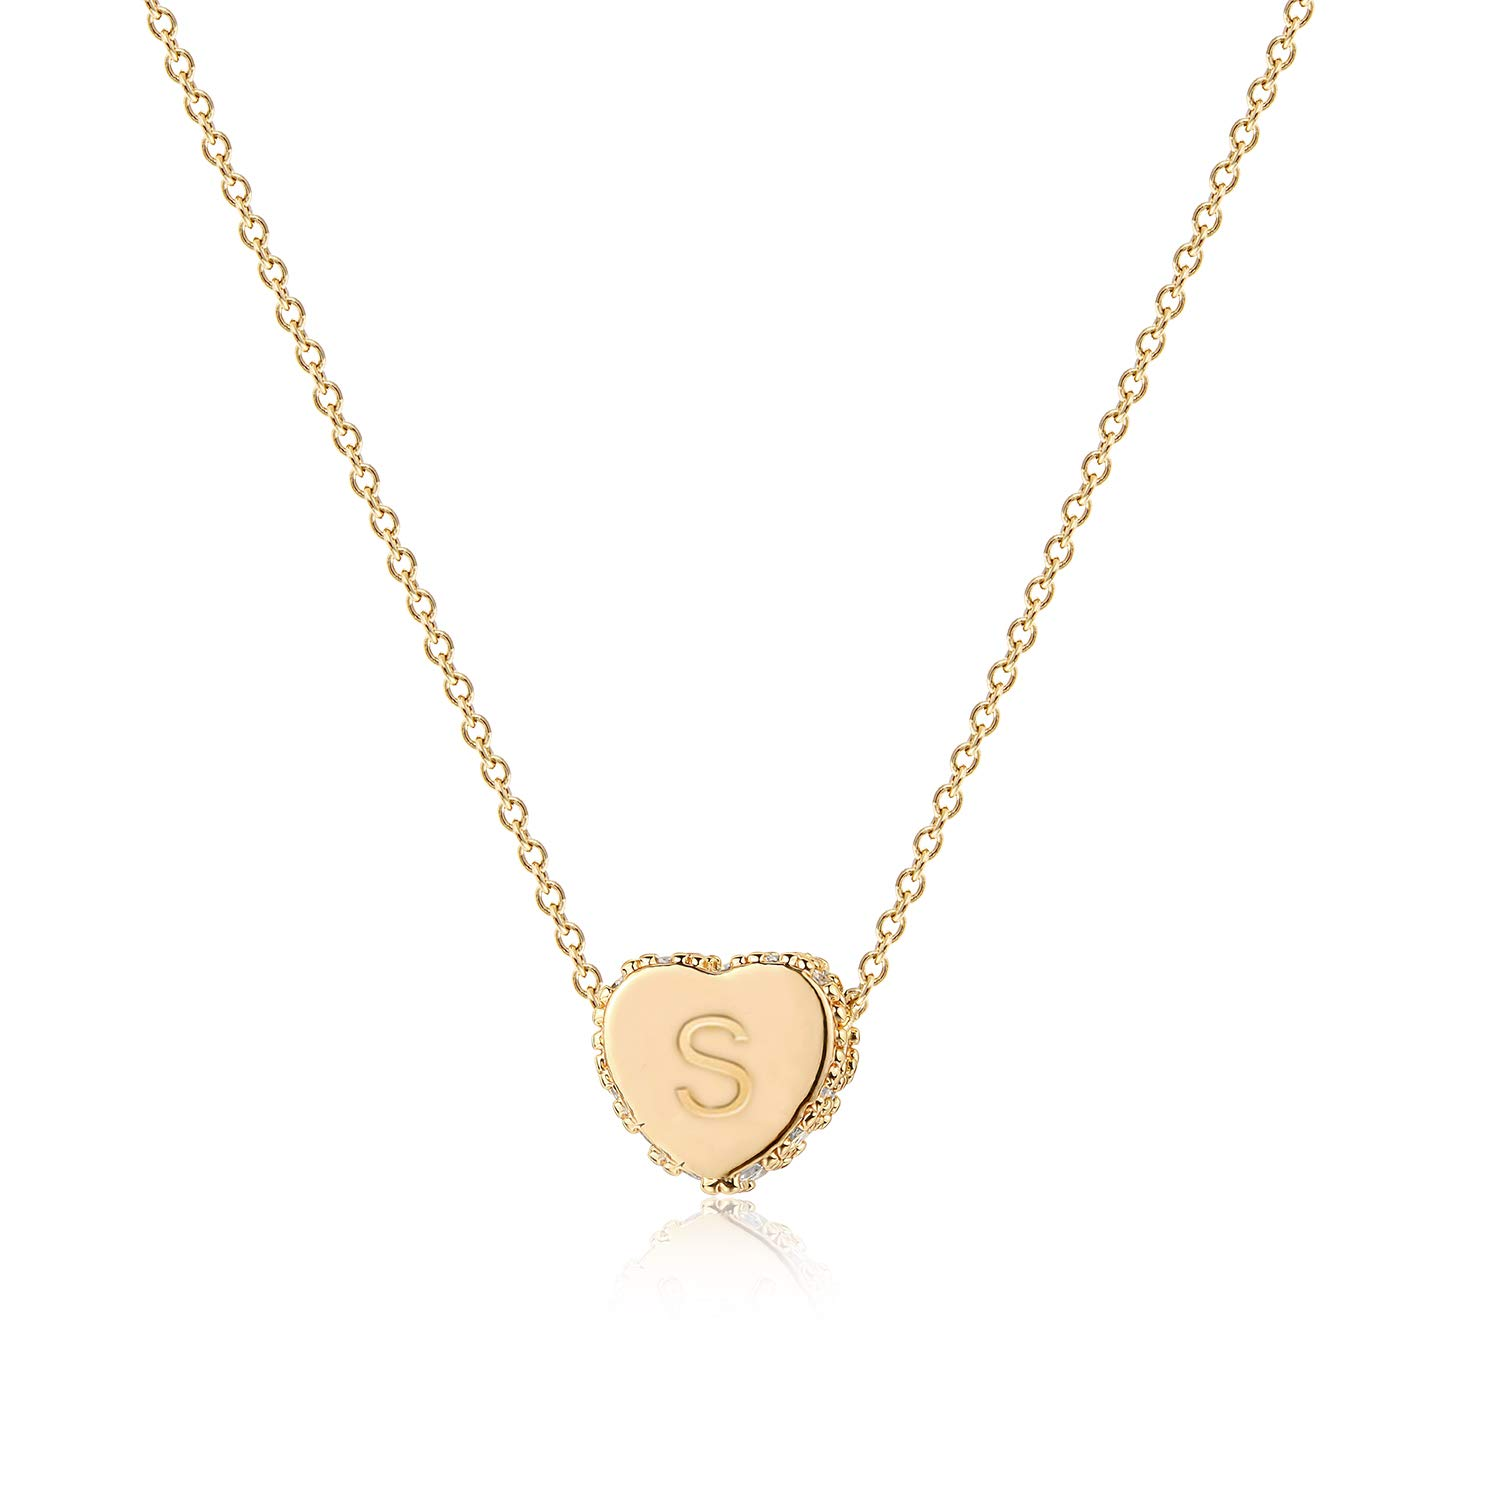 Tiny Gold Initial Heart Necklace14K Gold Filled Handmade Dainty Personalized Letter Heart Choker